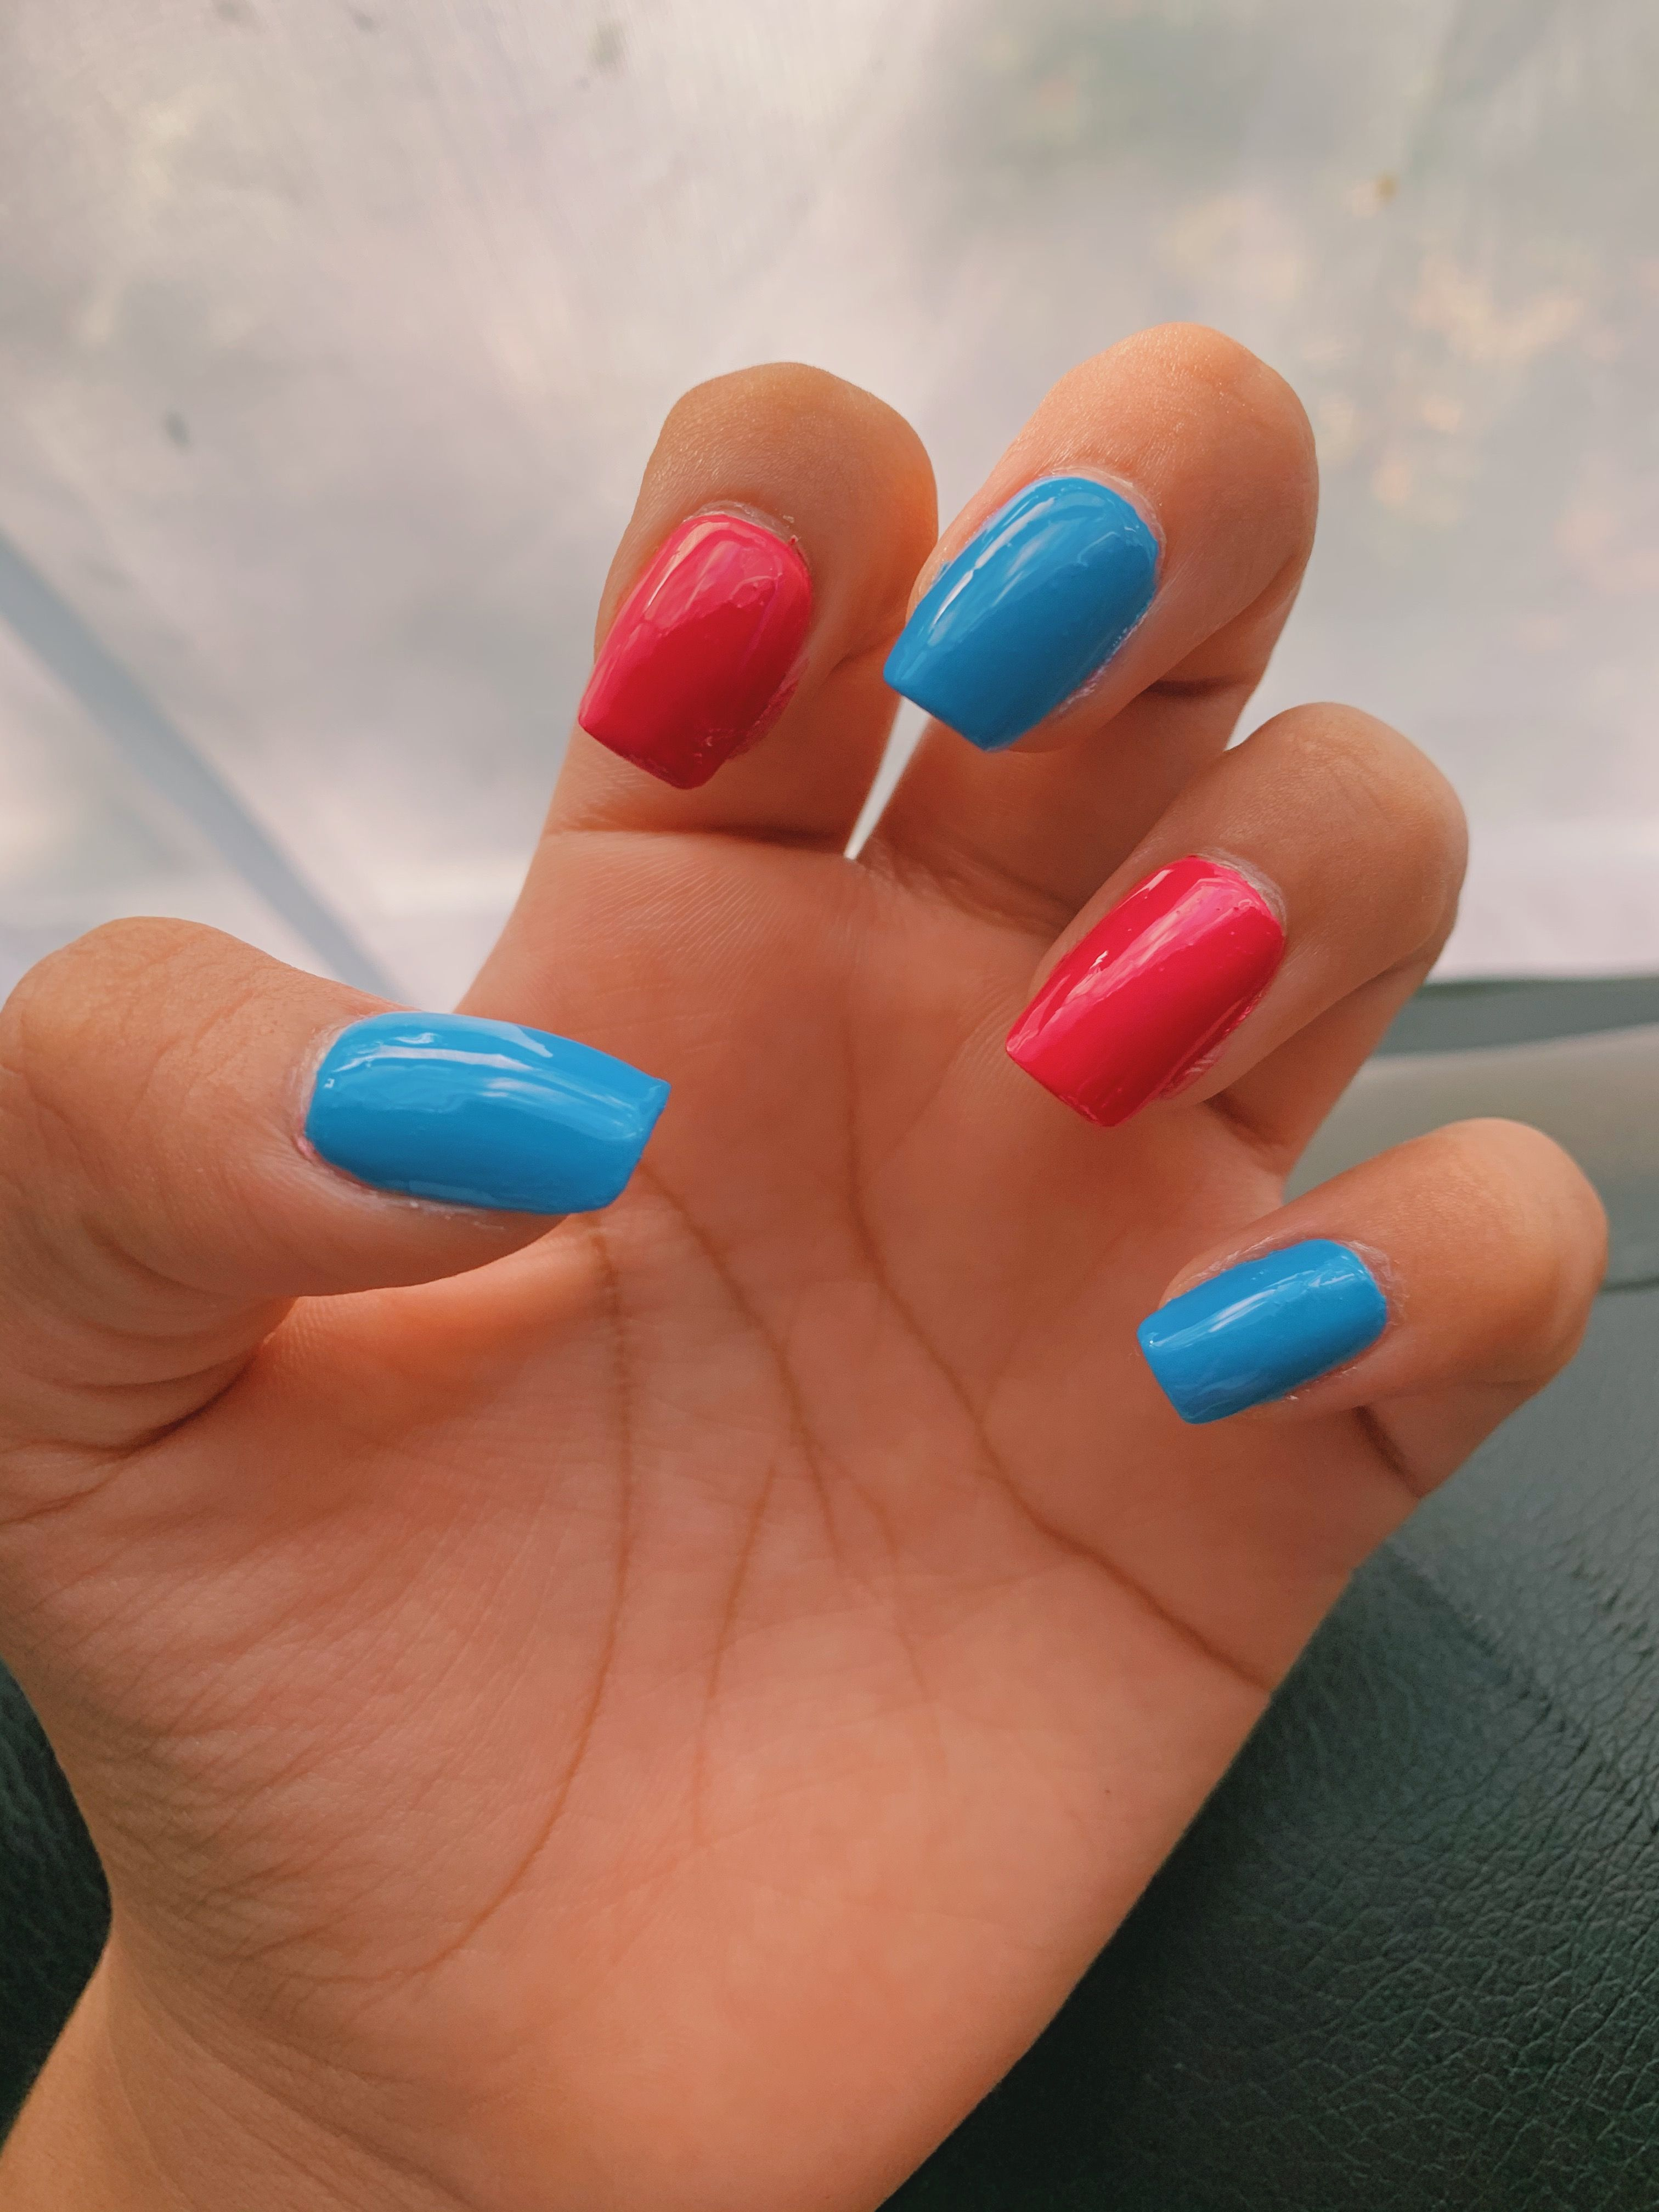 Fine Line Nails In 2020 Lines On Nails One Direction Nails Best Acrylic Nails